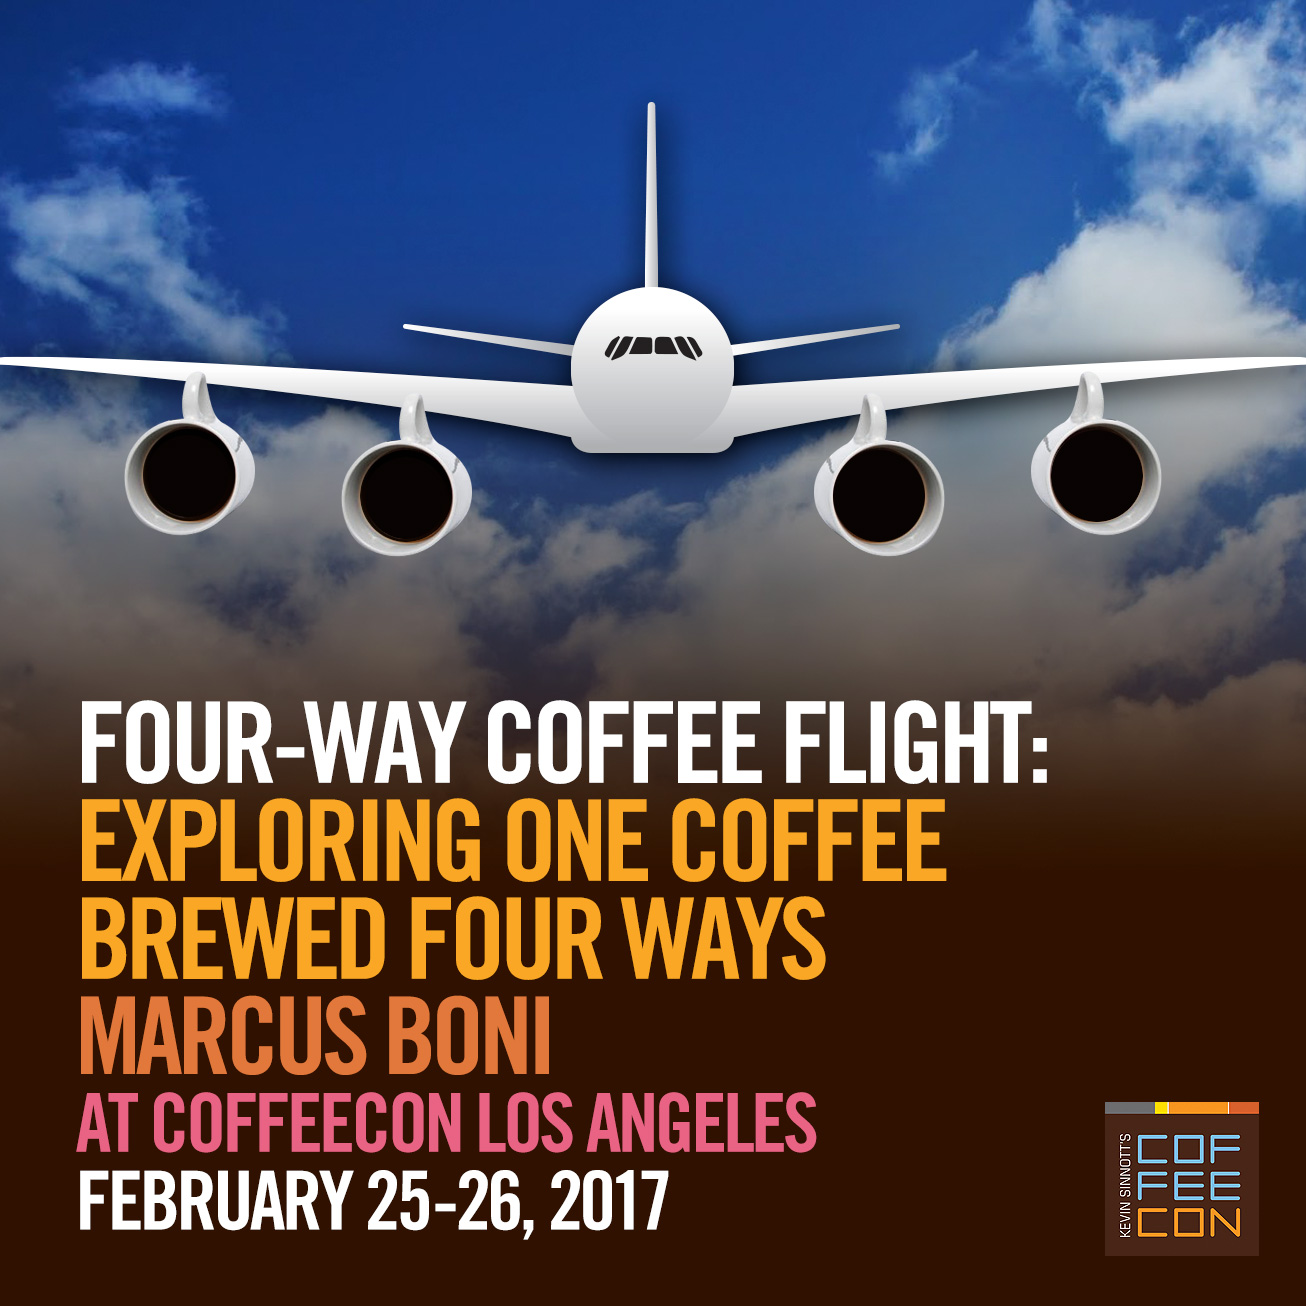 Four-Way Coffee Flight - Exploring one coffee brewed with four different methods at CoffeeConLA 2017